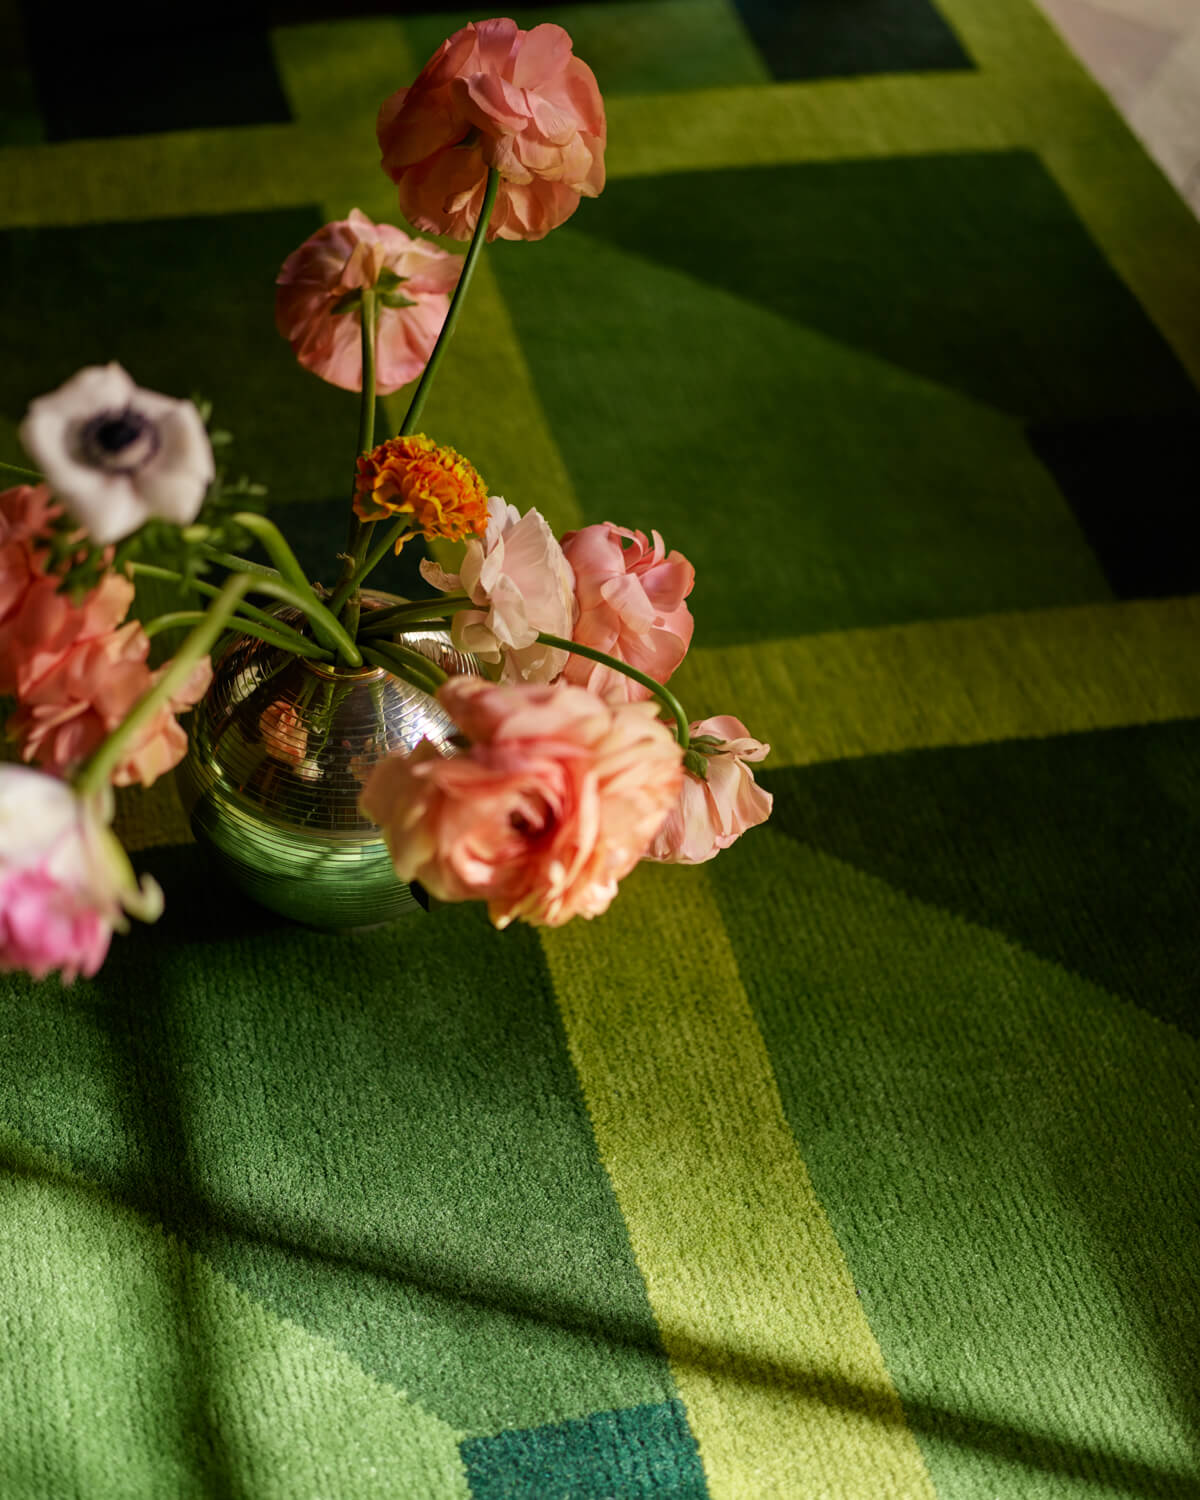 Close up of green rug Garden Maze with a vase of flowers.